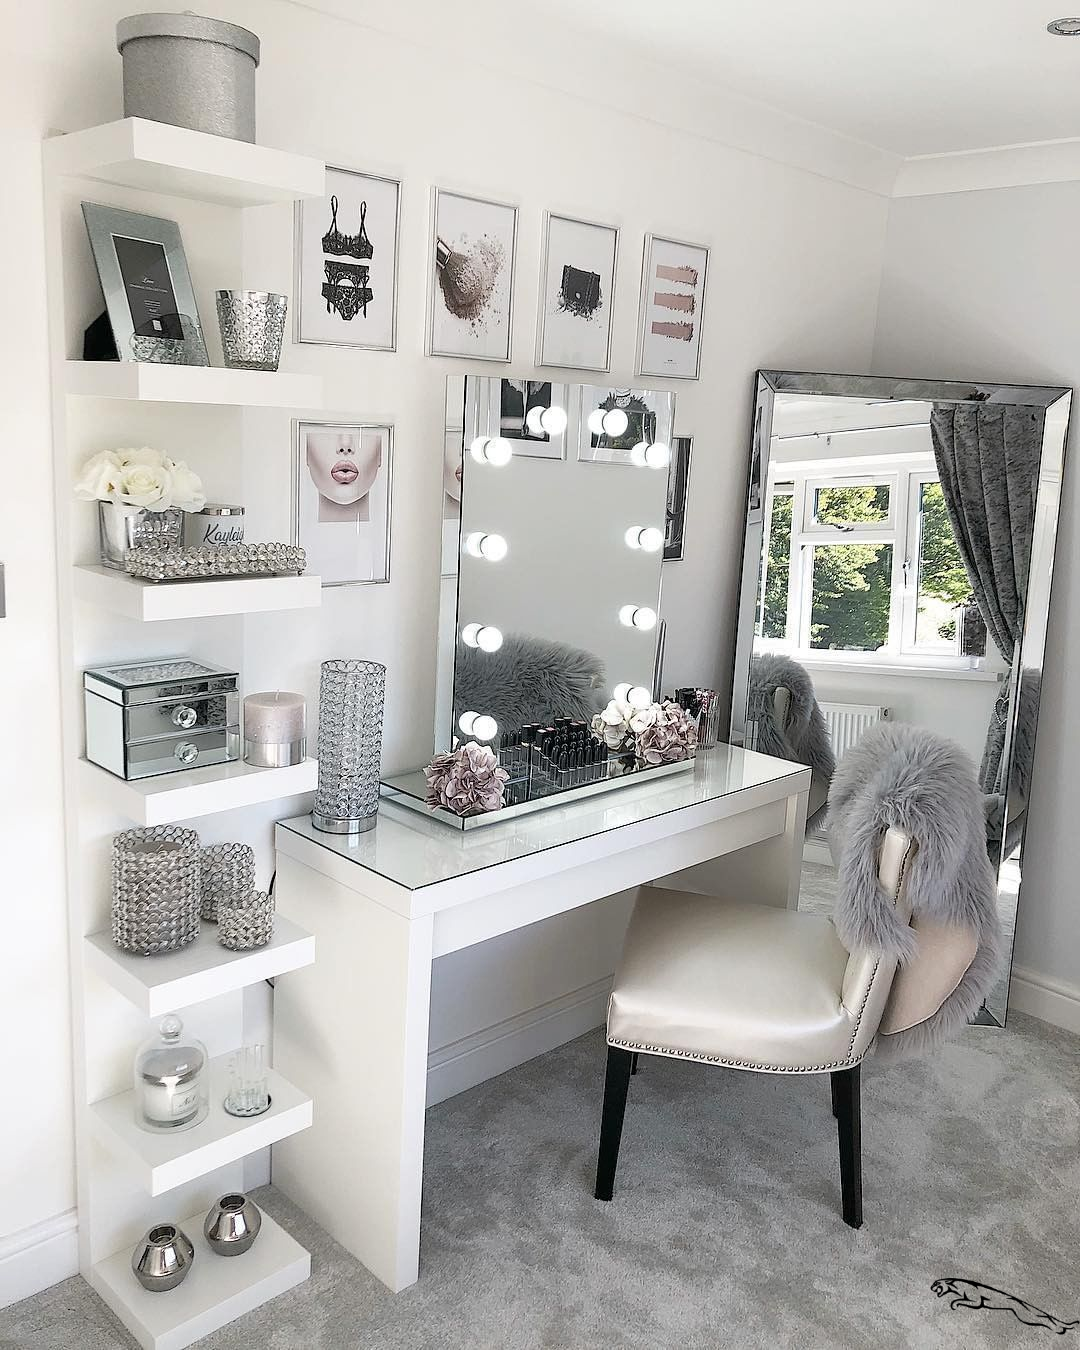 Decor On Instagram White Beauty Via